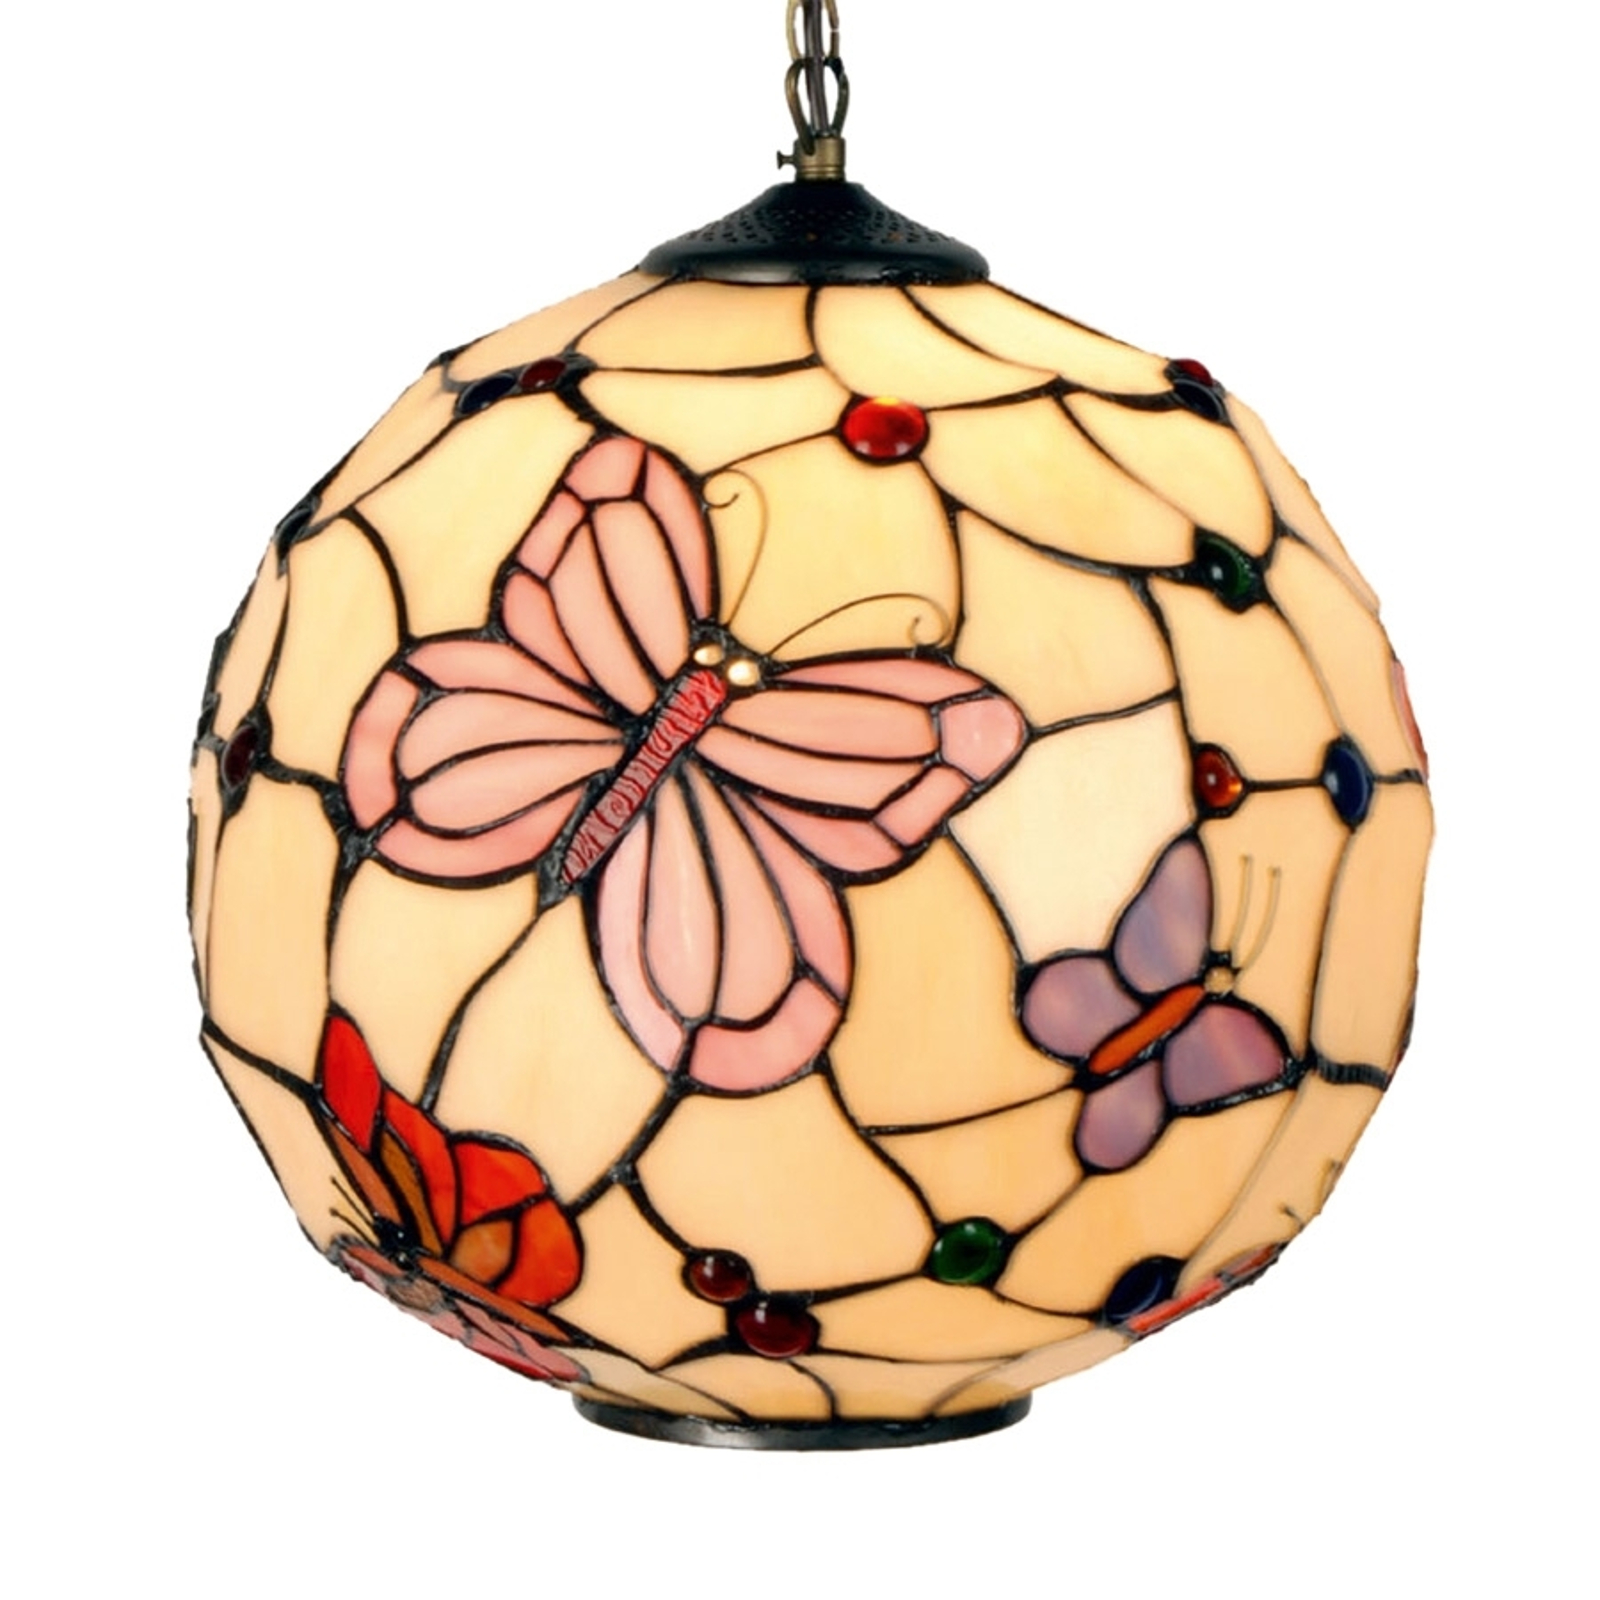 Suspension Rosy Butterfly au style Tiffany